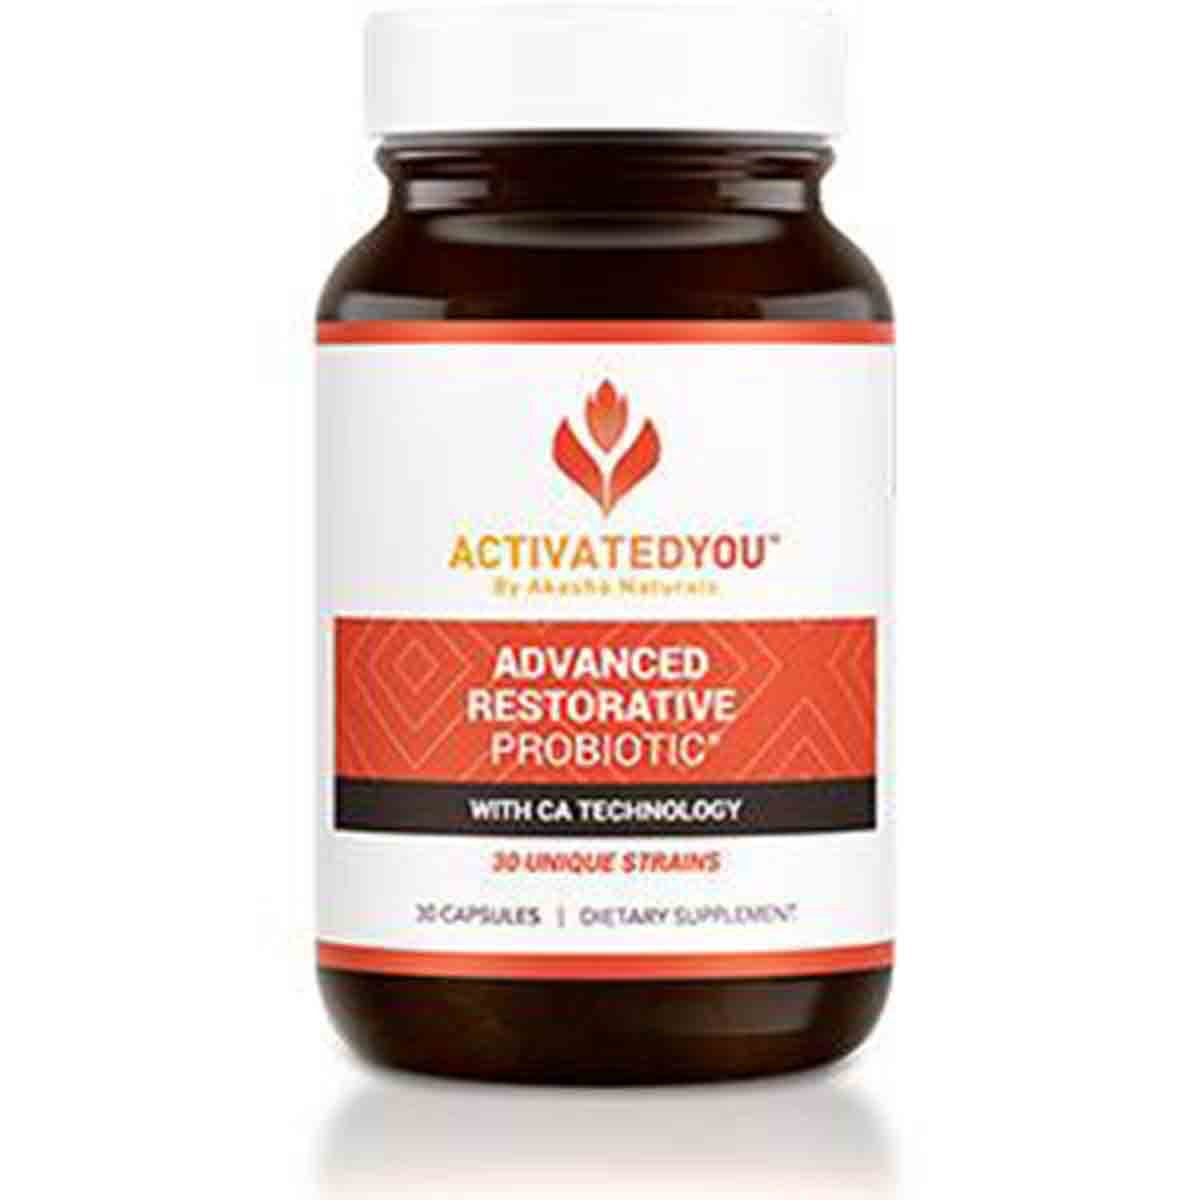 ActivatedYou Advanced Restorative Probiotic